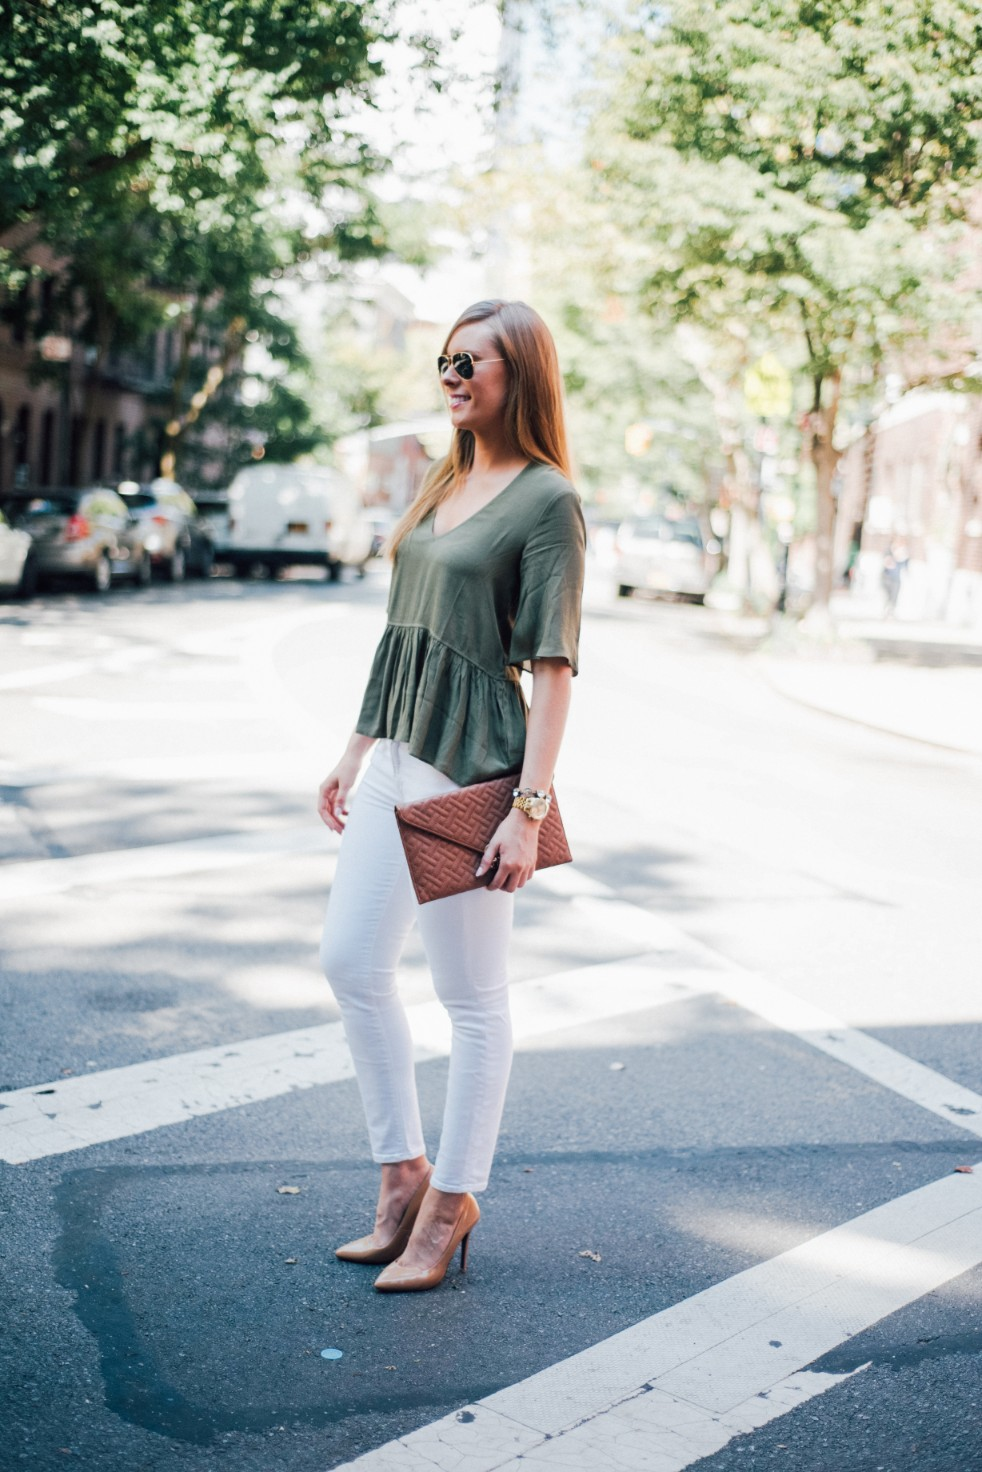 white jeans and peplum top west village fashion new york fashion blogger lauren slade style elixir blog spring outfit ideas 1 - Style Sessions - White Jeans and Peplum Top in the West Village featured by popular US style blogger, Style Elixir